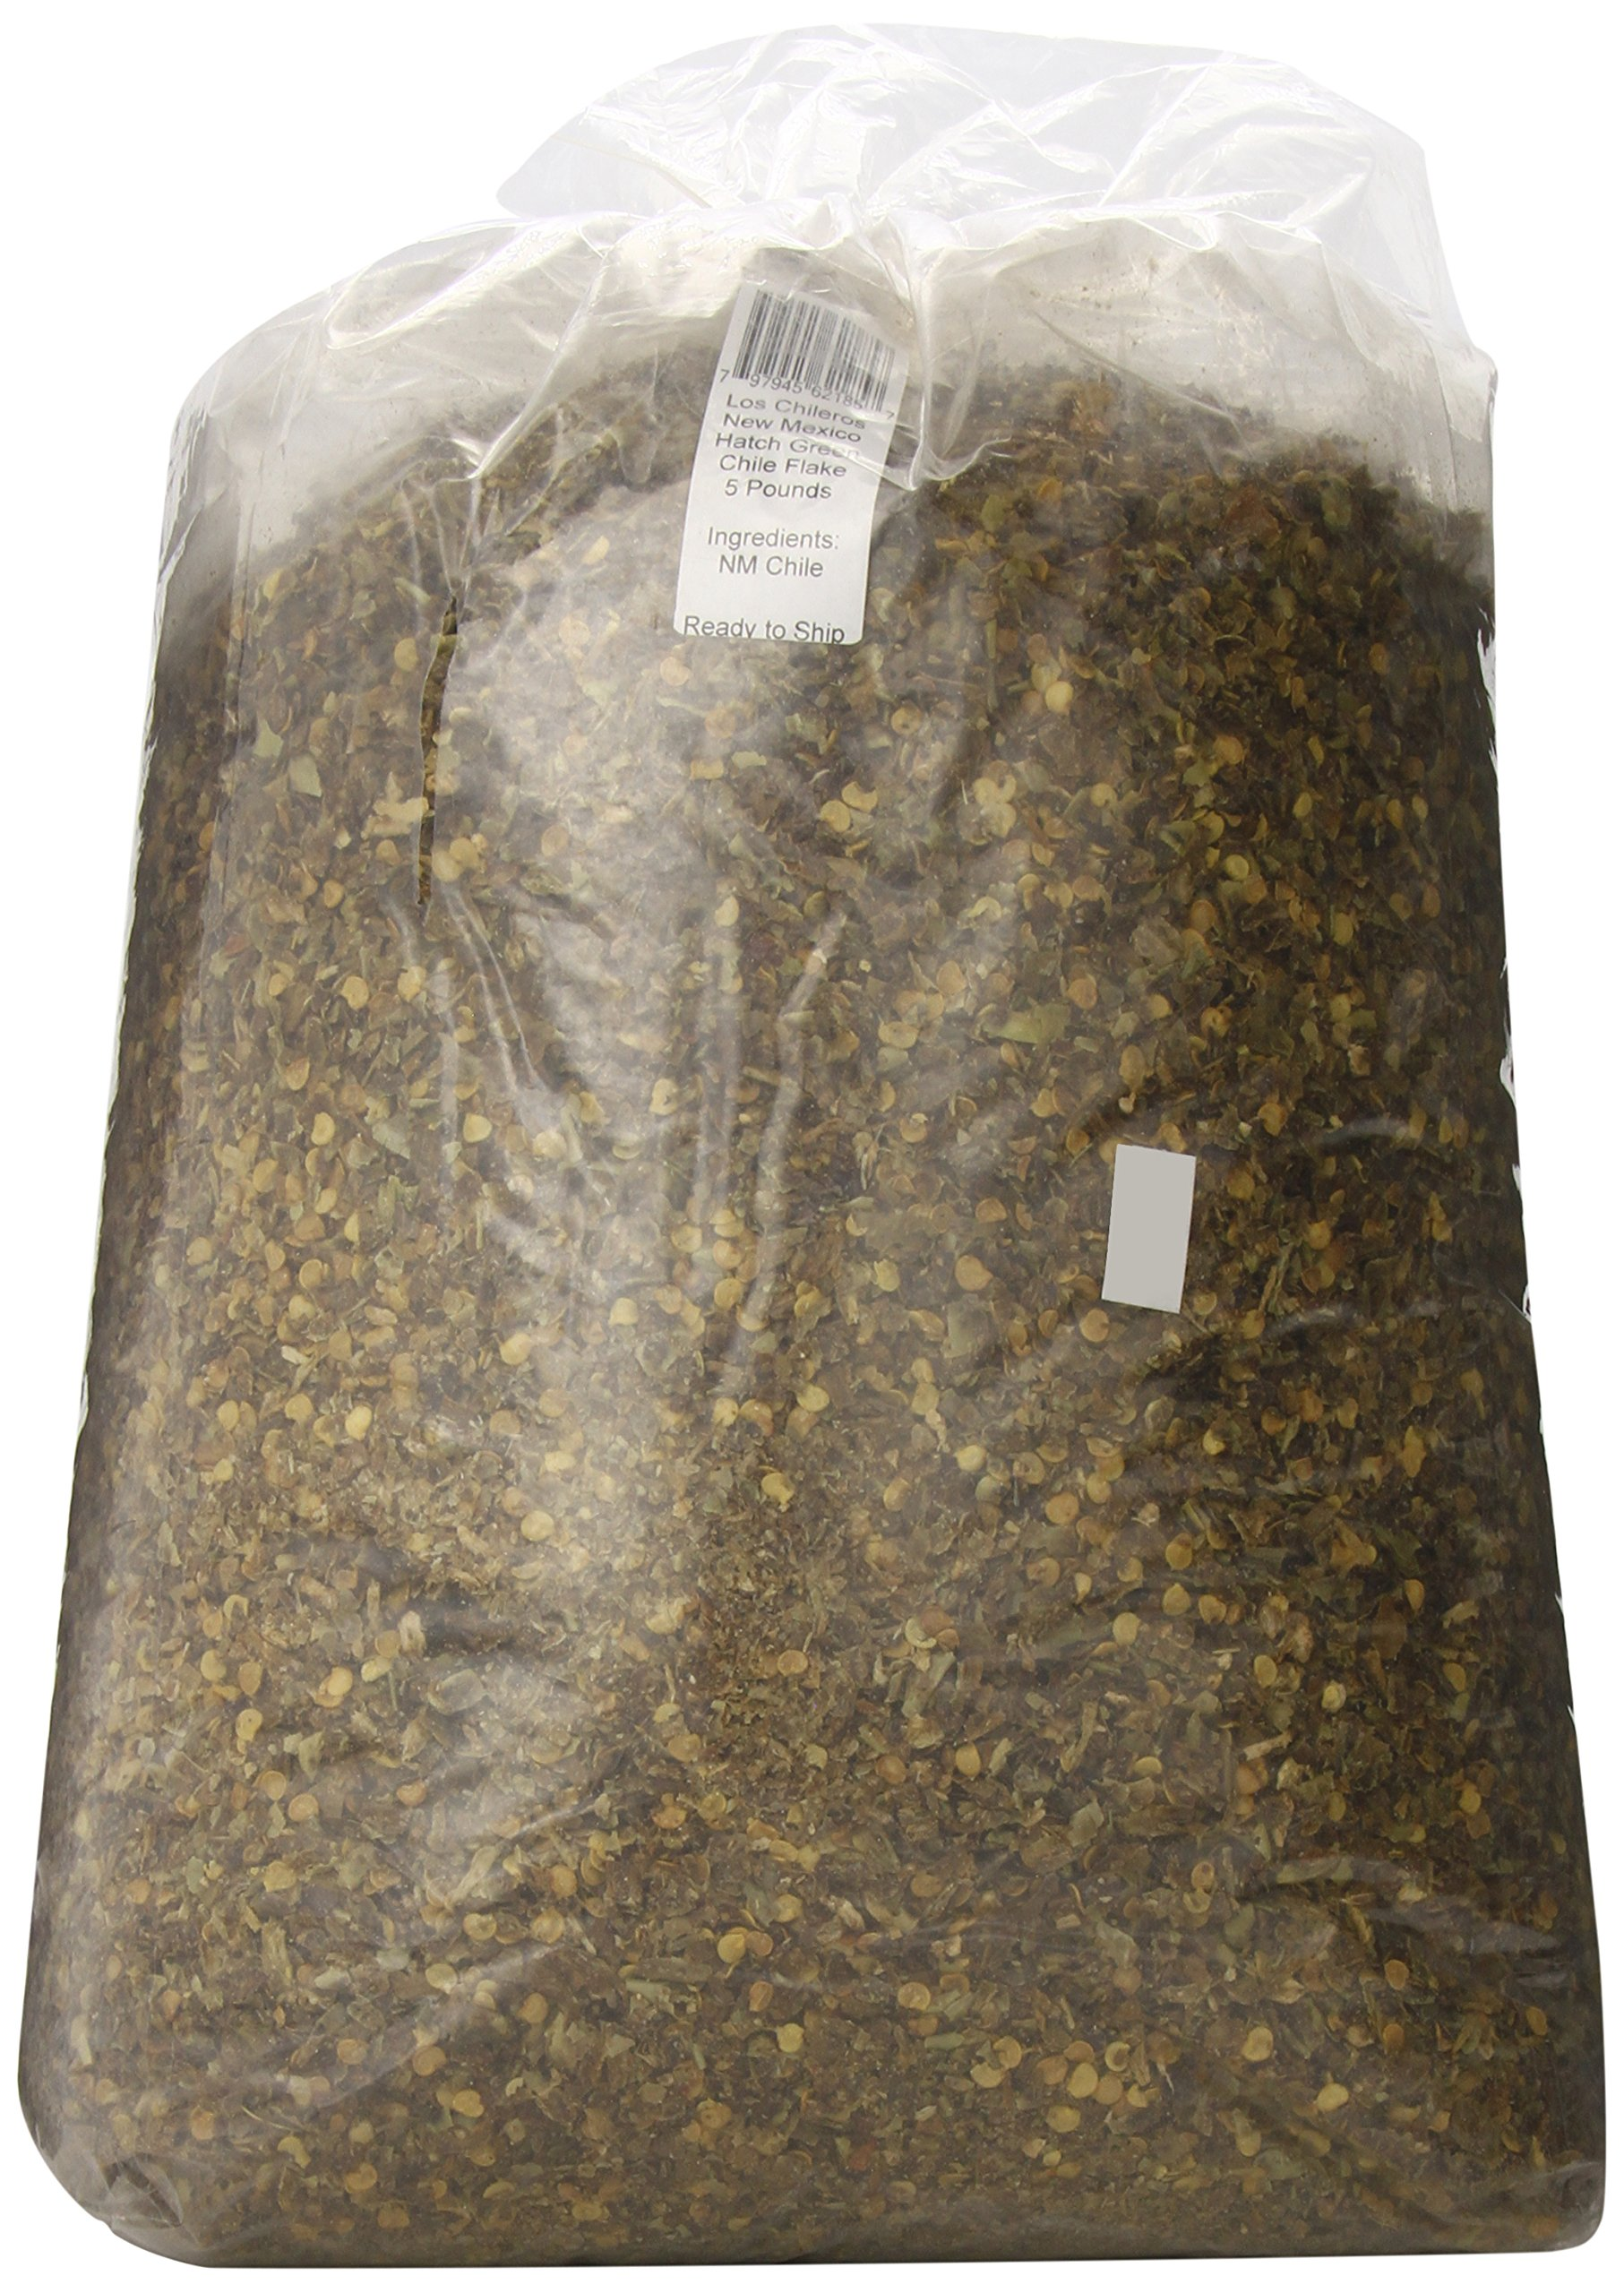 Los Chileros New Mexico Hatch Green Chile, Flake, 5 Pound